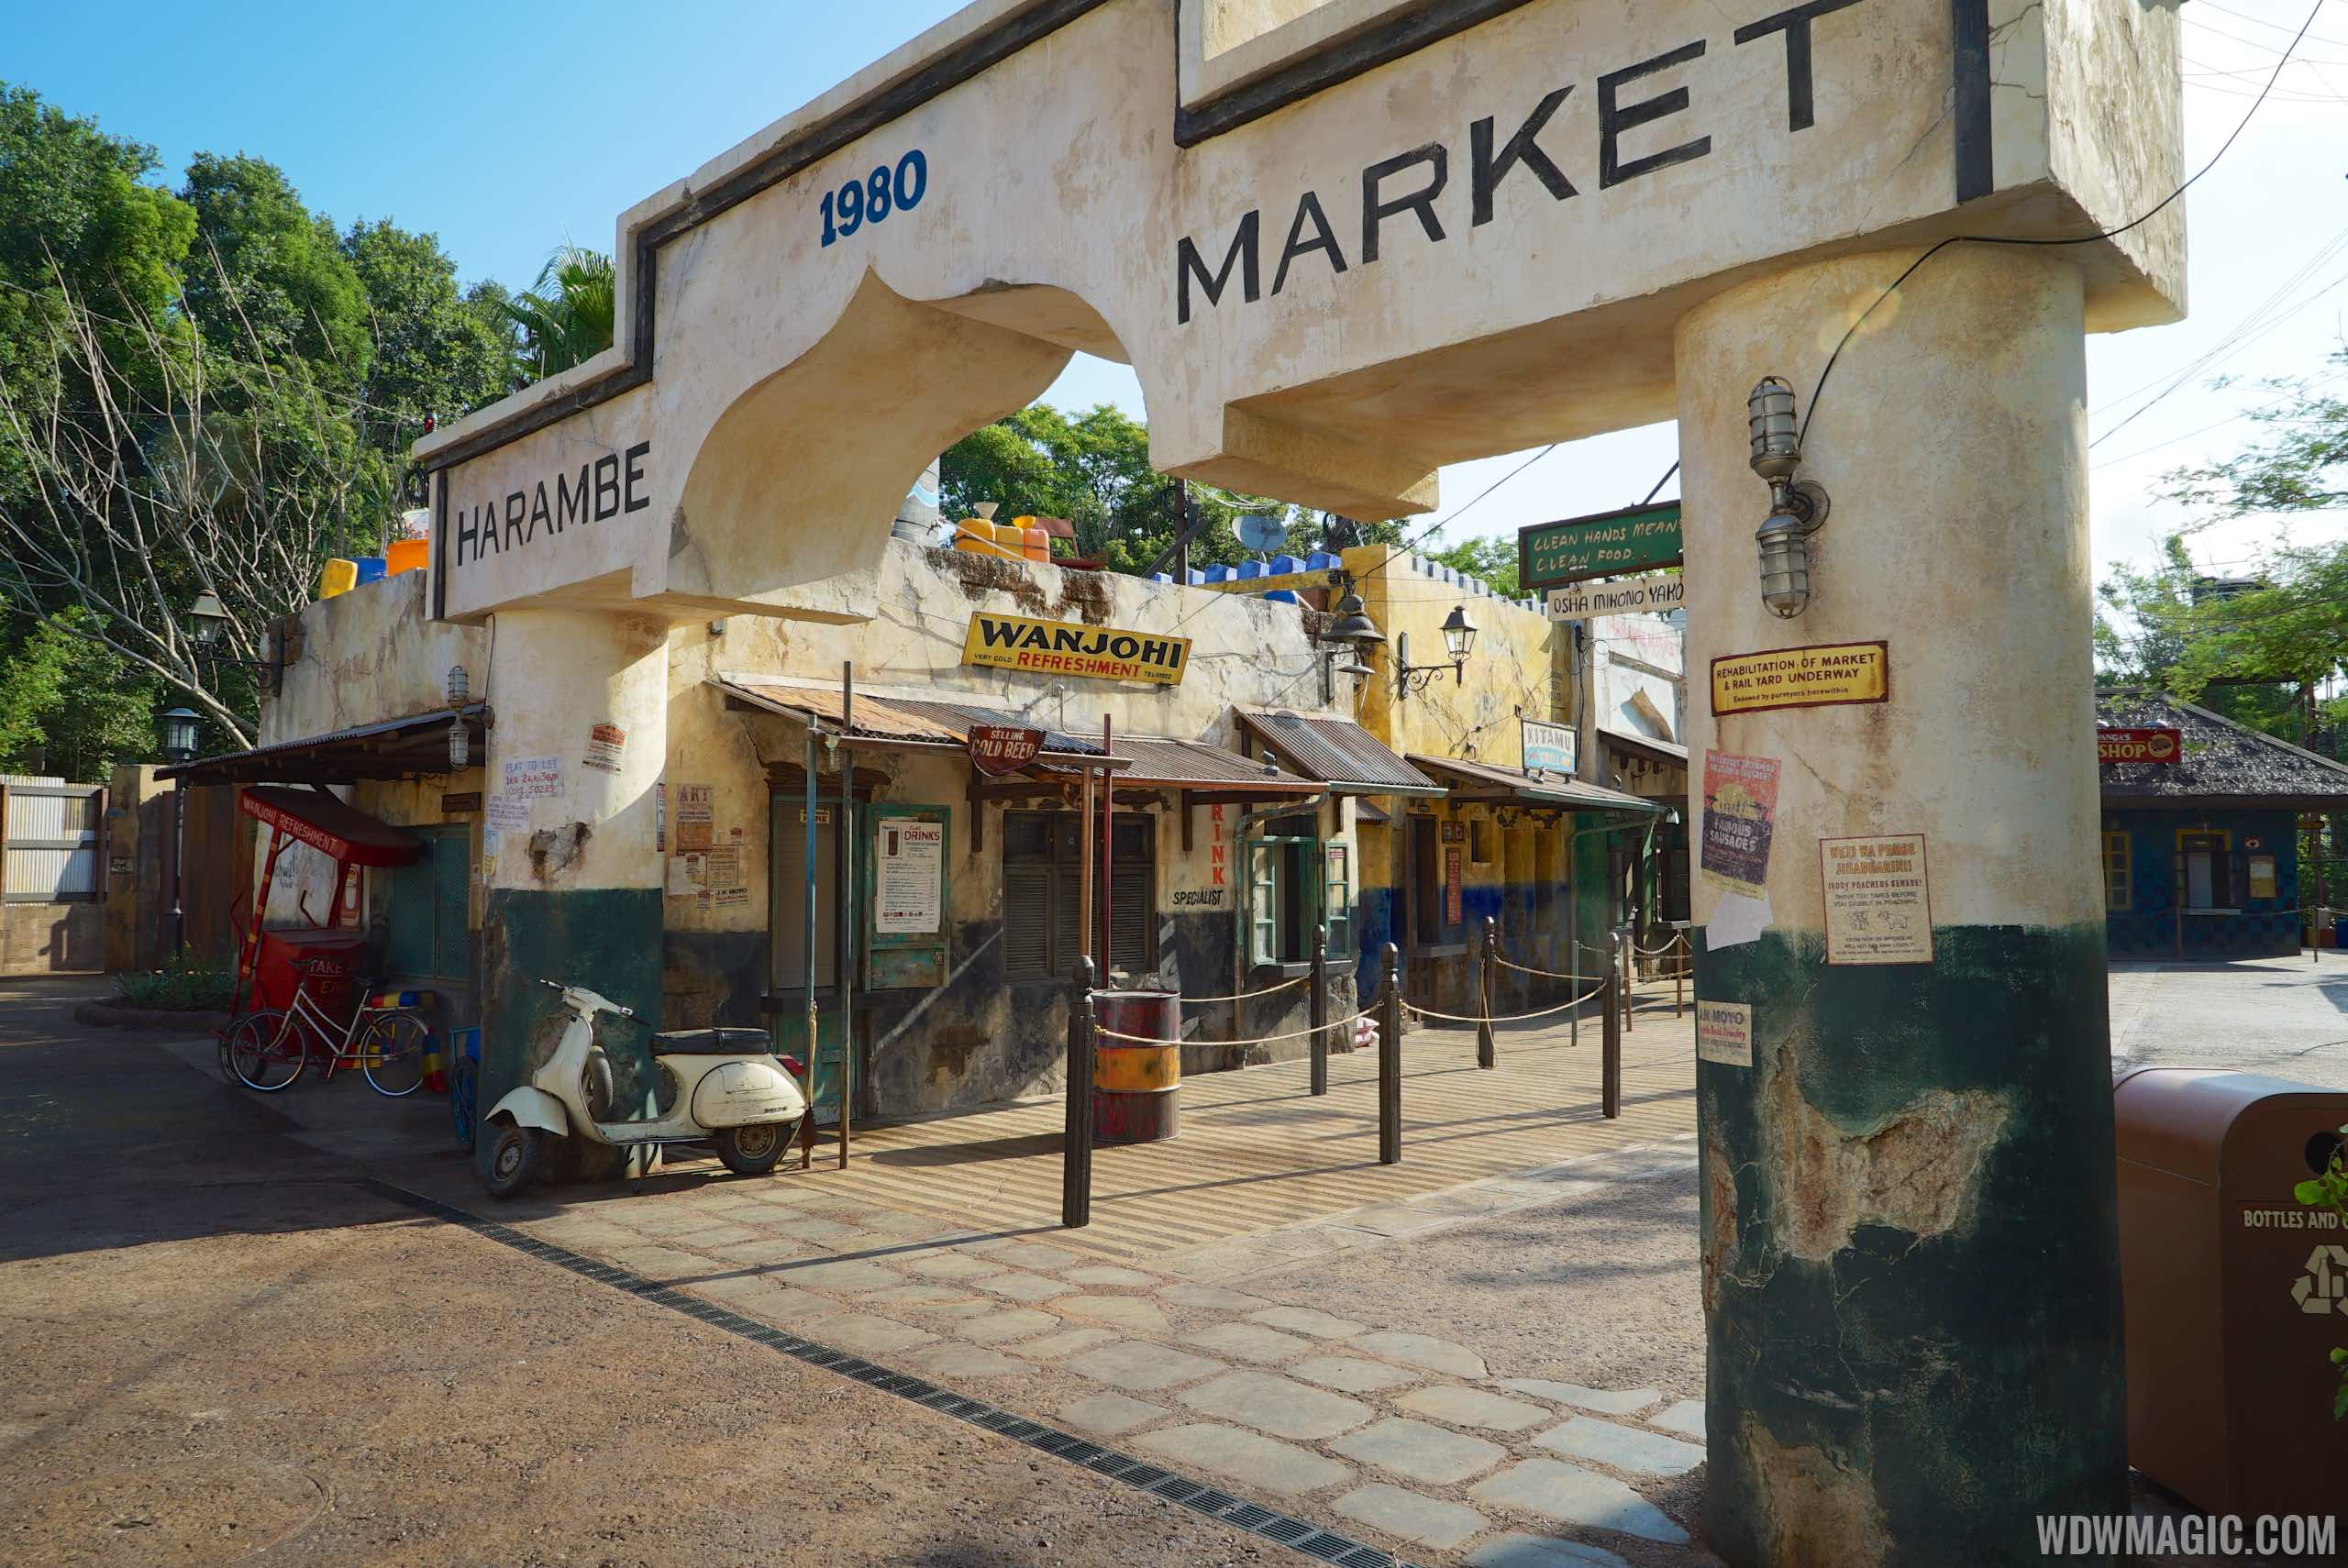 Harambe Market is one of the locations that has seen price increases